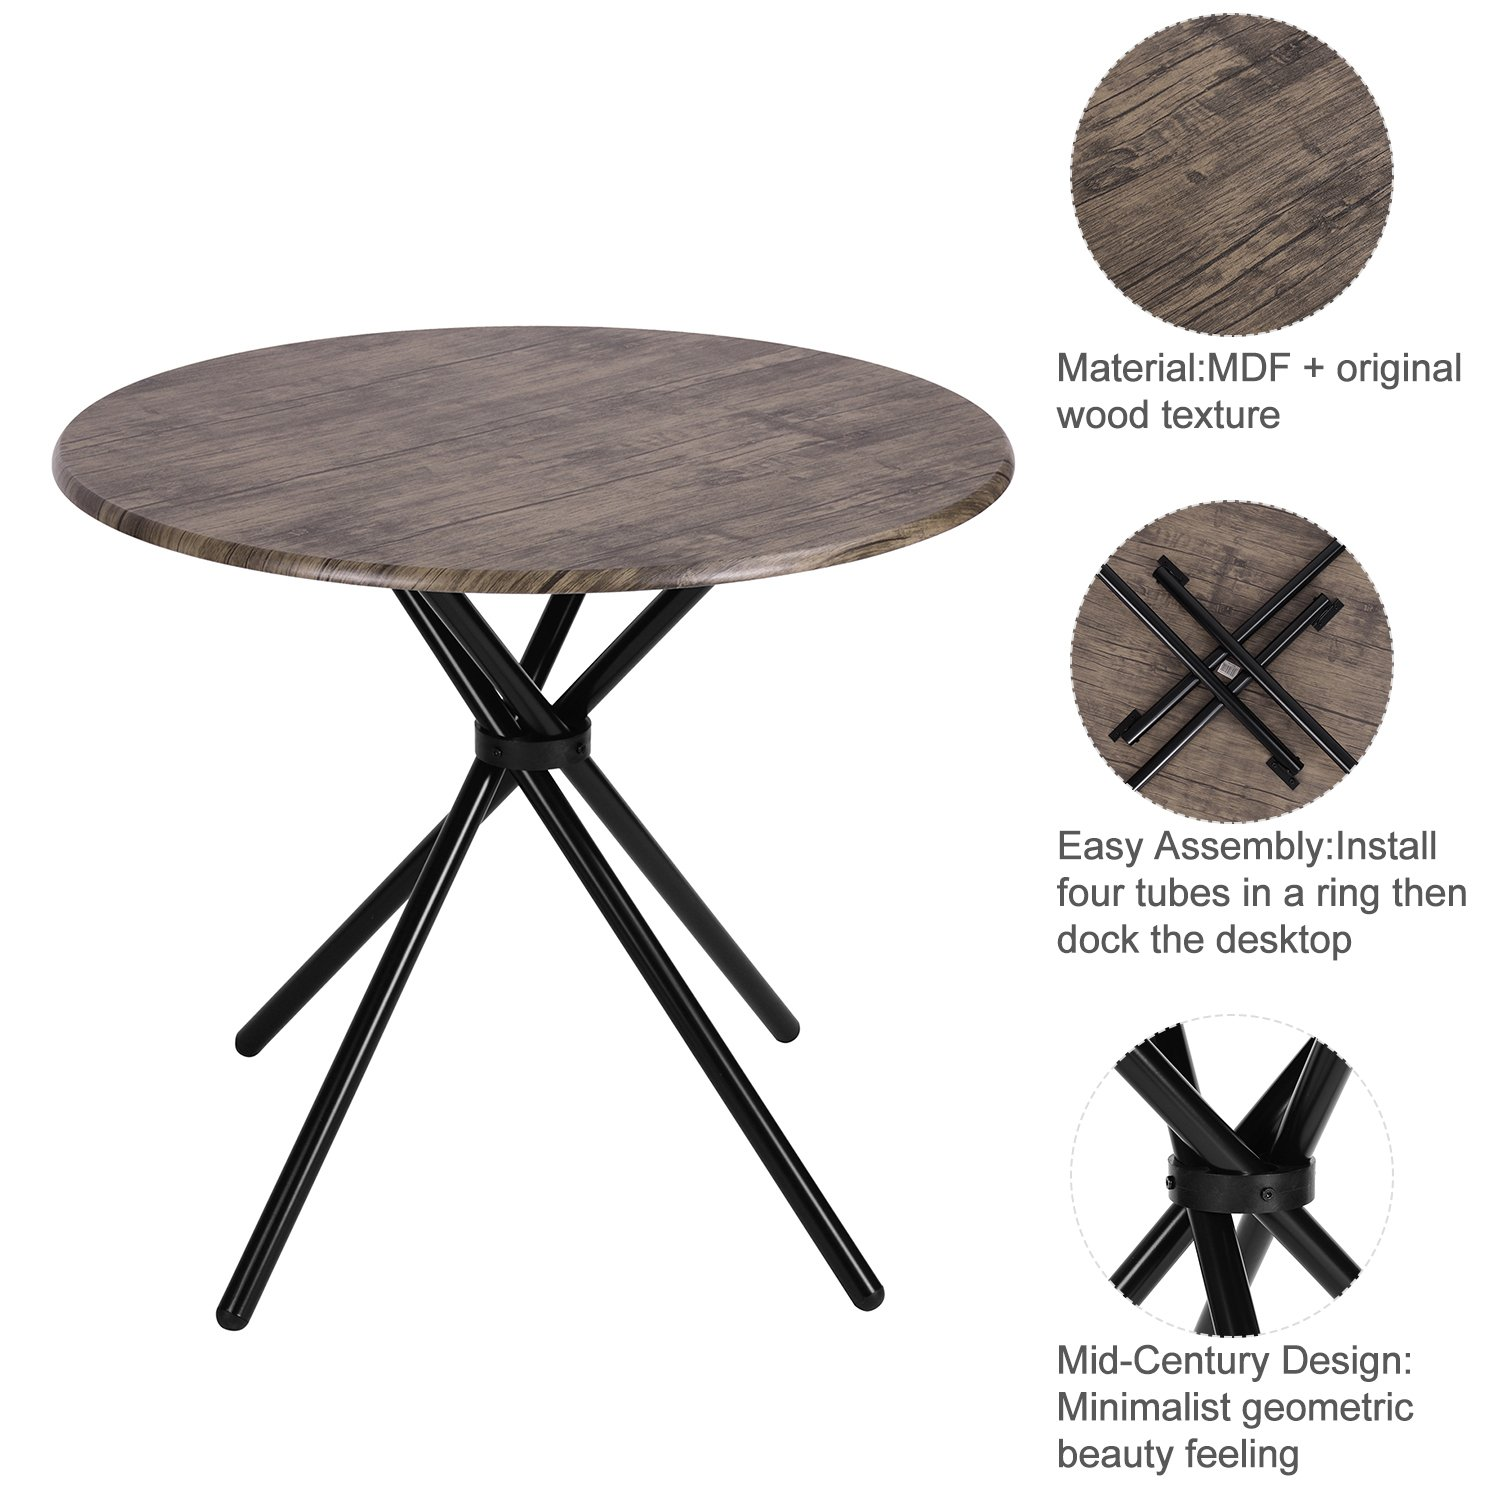 Kitchen Dining Table Industrial Brown Round Mid-Century Wood Coffee Table Office Home Easy-Assembly 35.4x35.4x29.5 Inches for for Living Drawing Receiving Room by Coavas (Image #3)